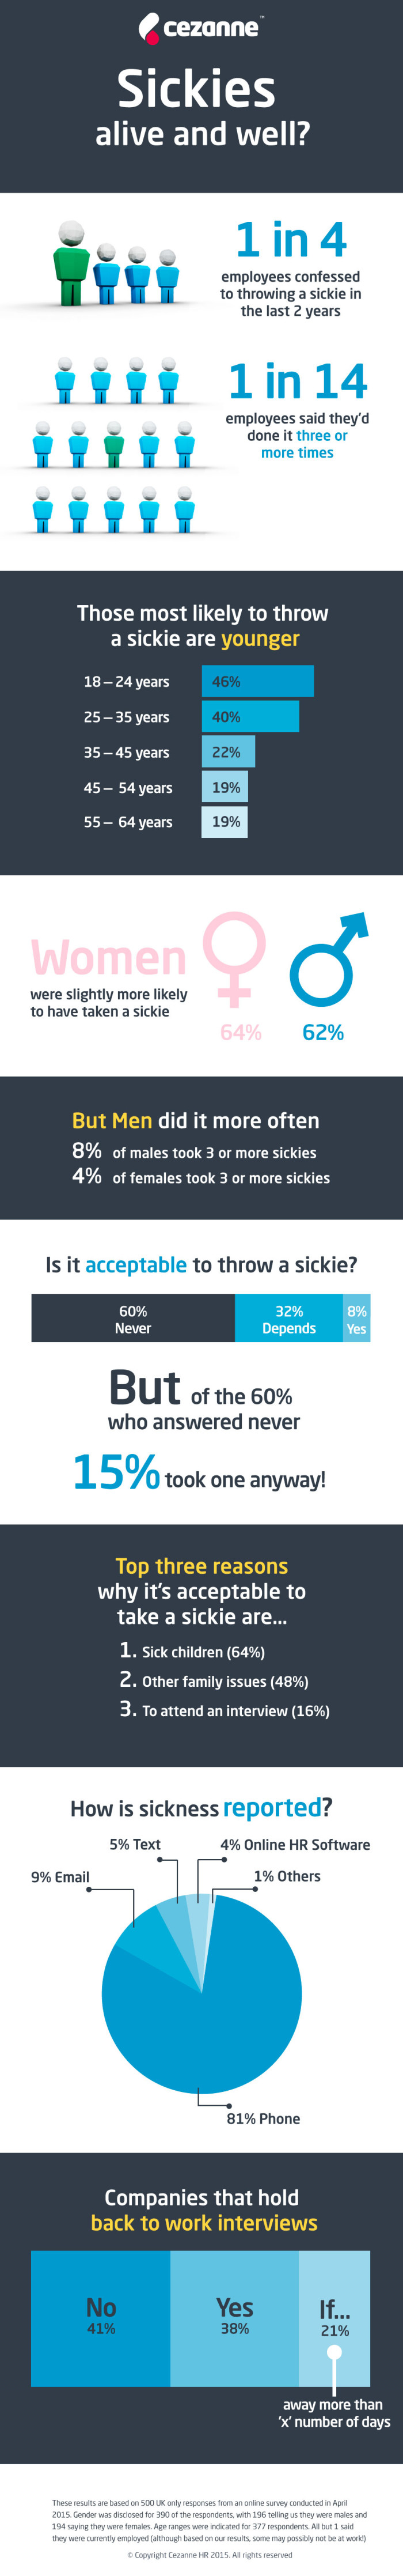 sickie infographic